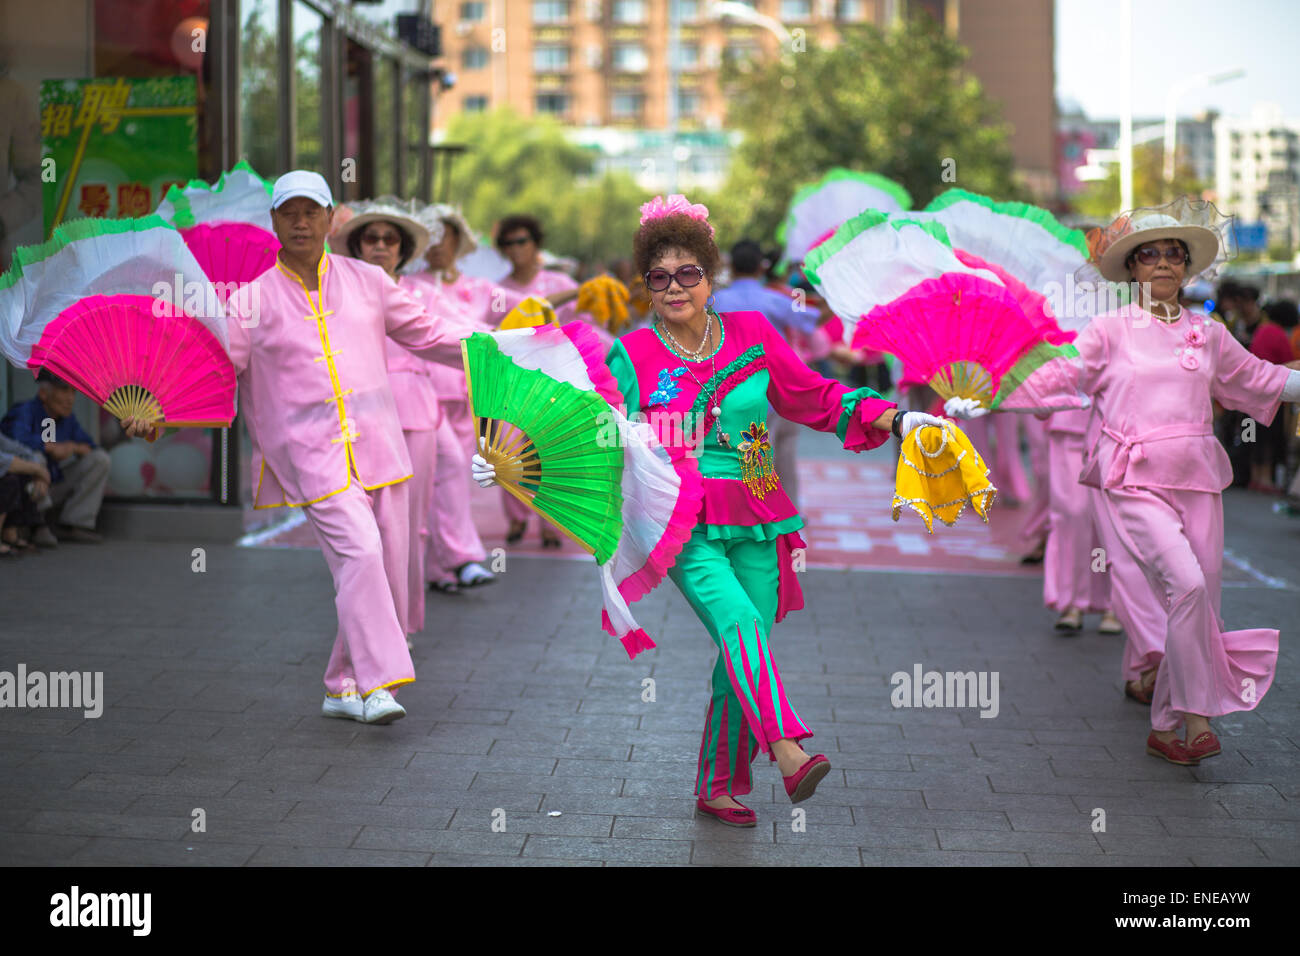 Chinese aunties dancing on the street - Stock Image